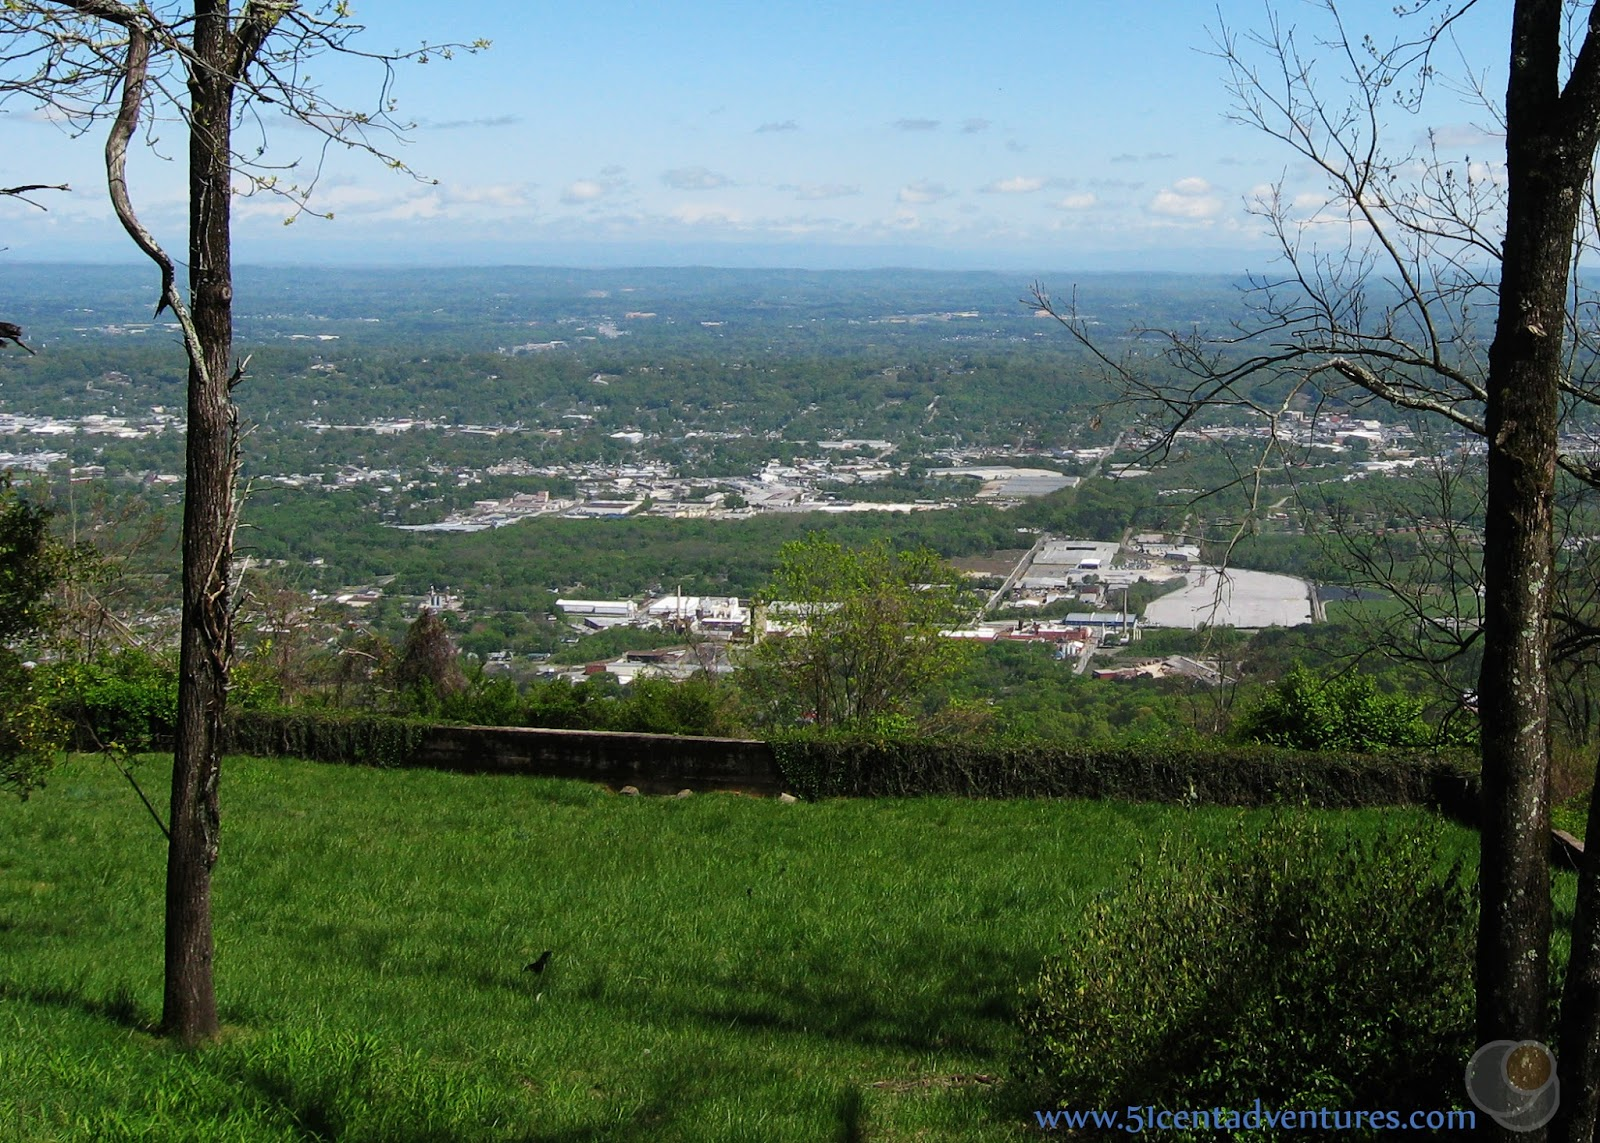 House On Top Of Lookout Mountain: 51 Cent Adventures: Lookout Mountain Parkway